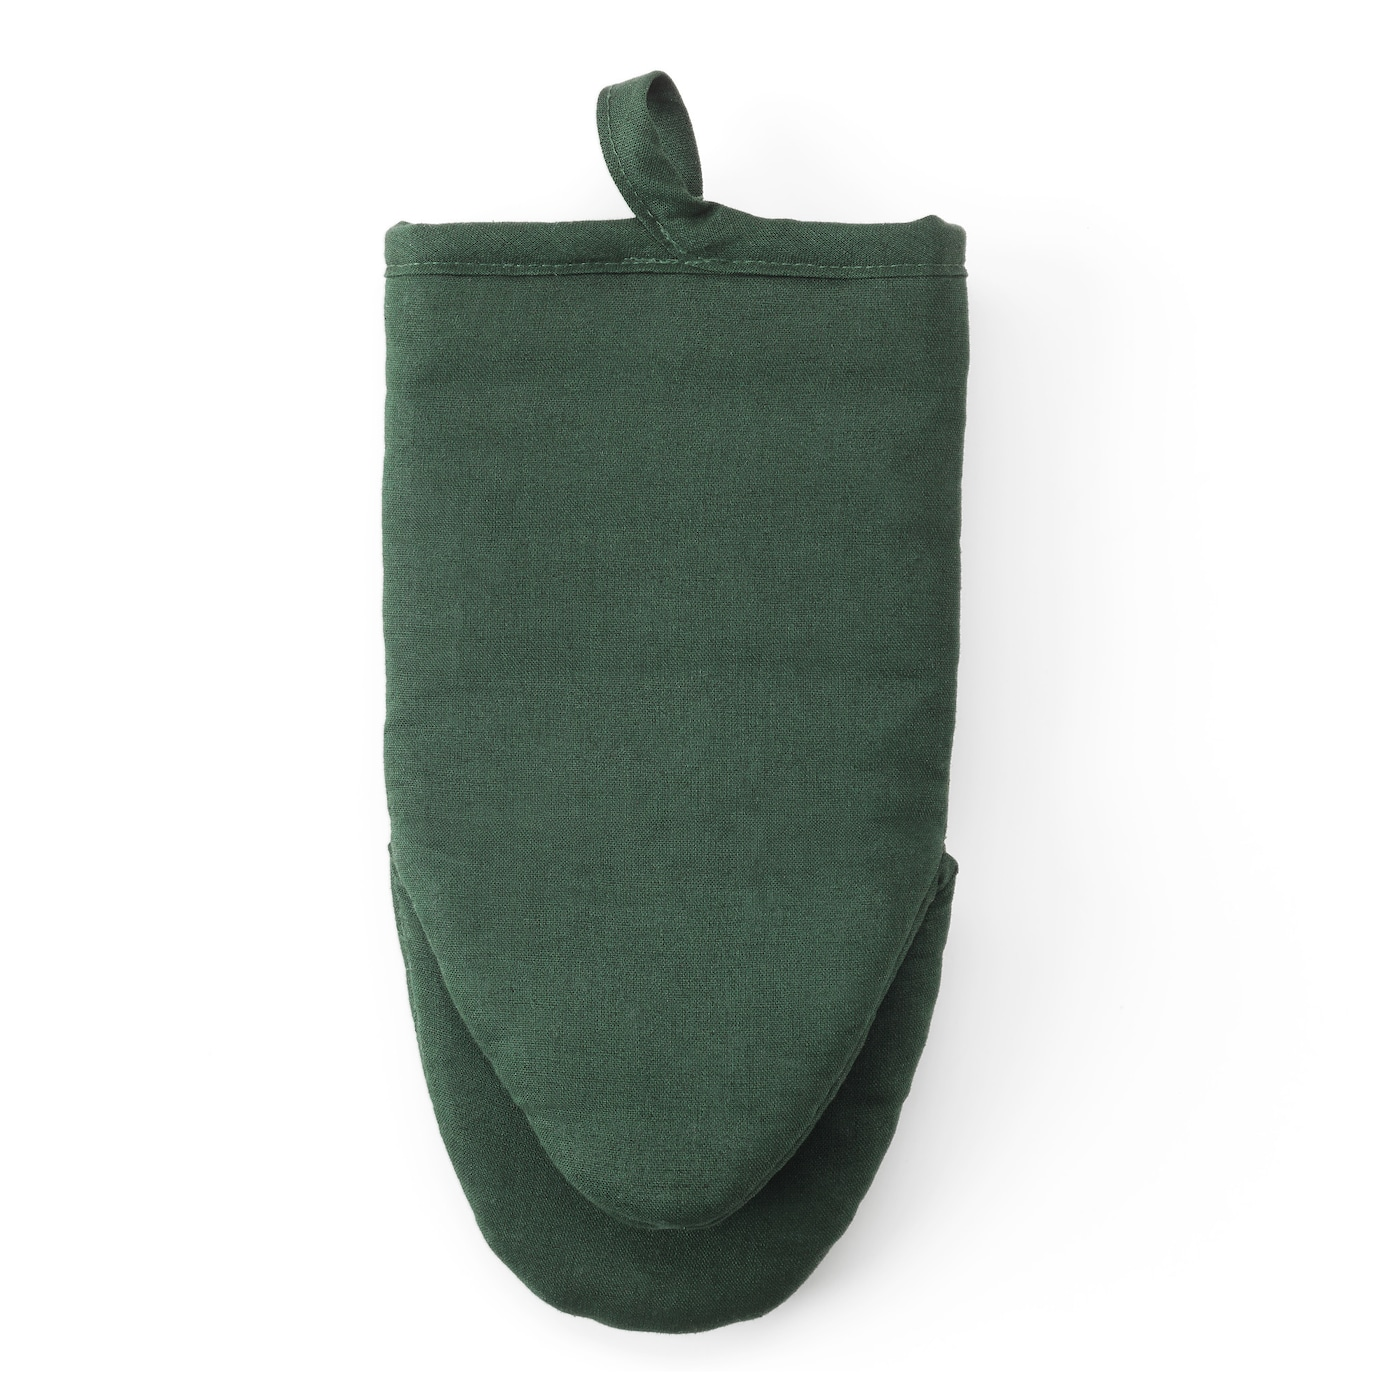 IKEA VILDKAPRIFOL oven glove Felted polyester layer in between gives very good heat insulation.